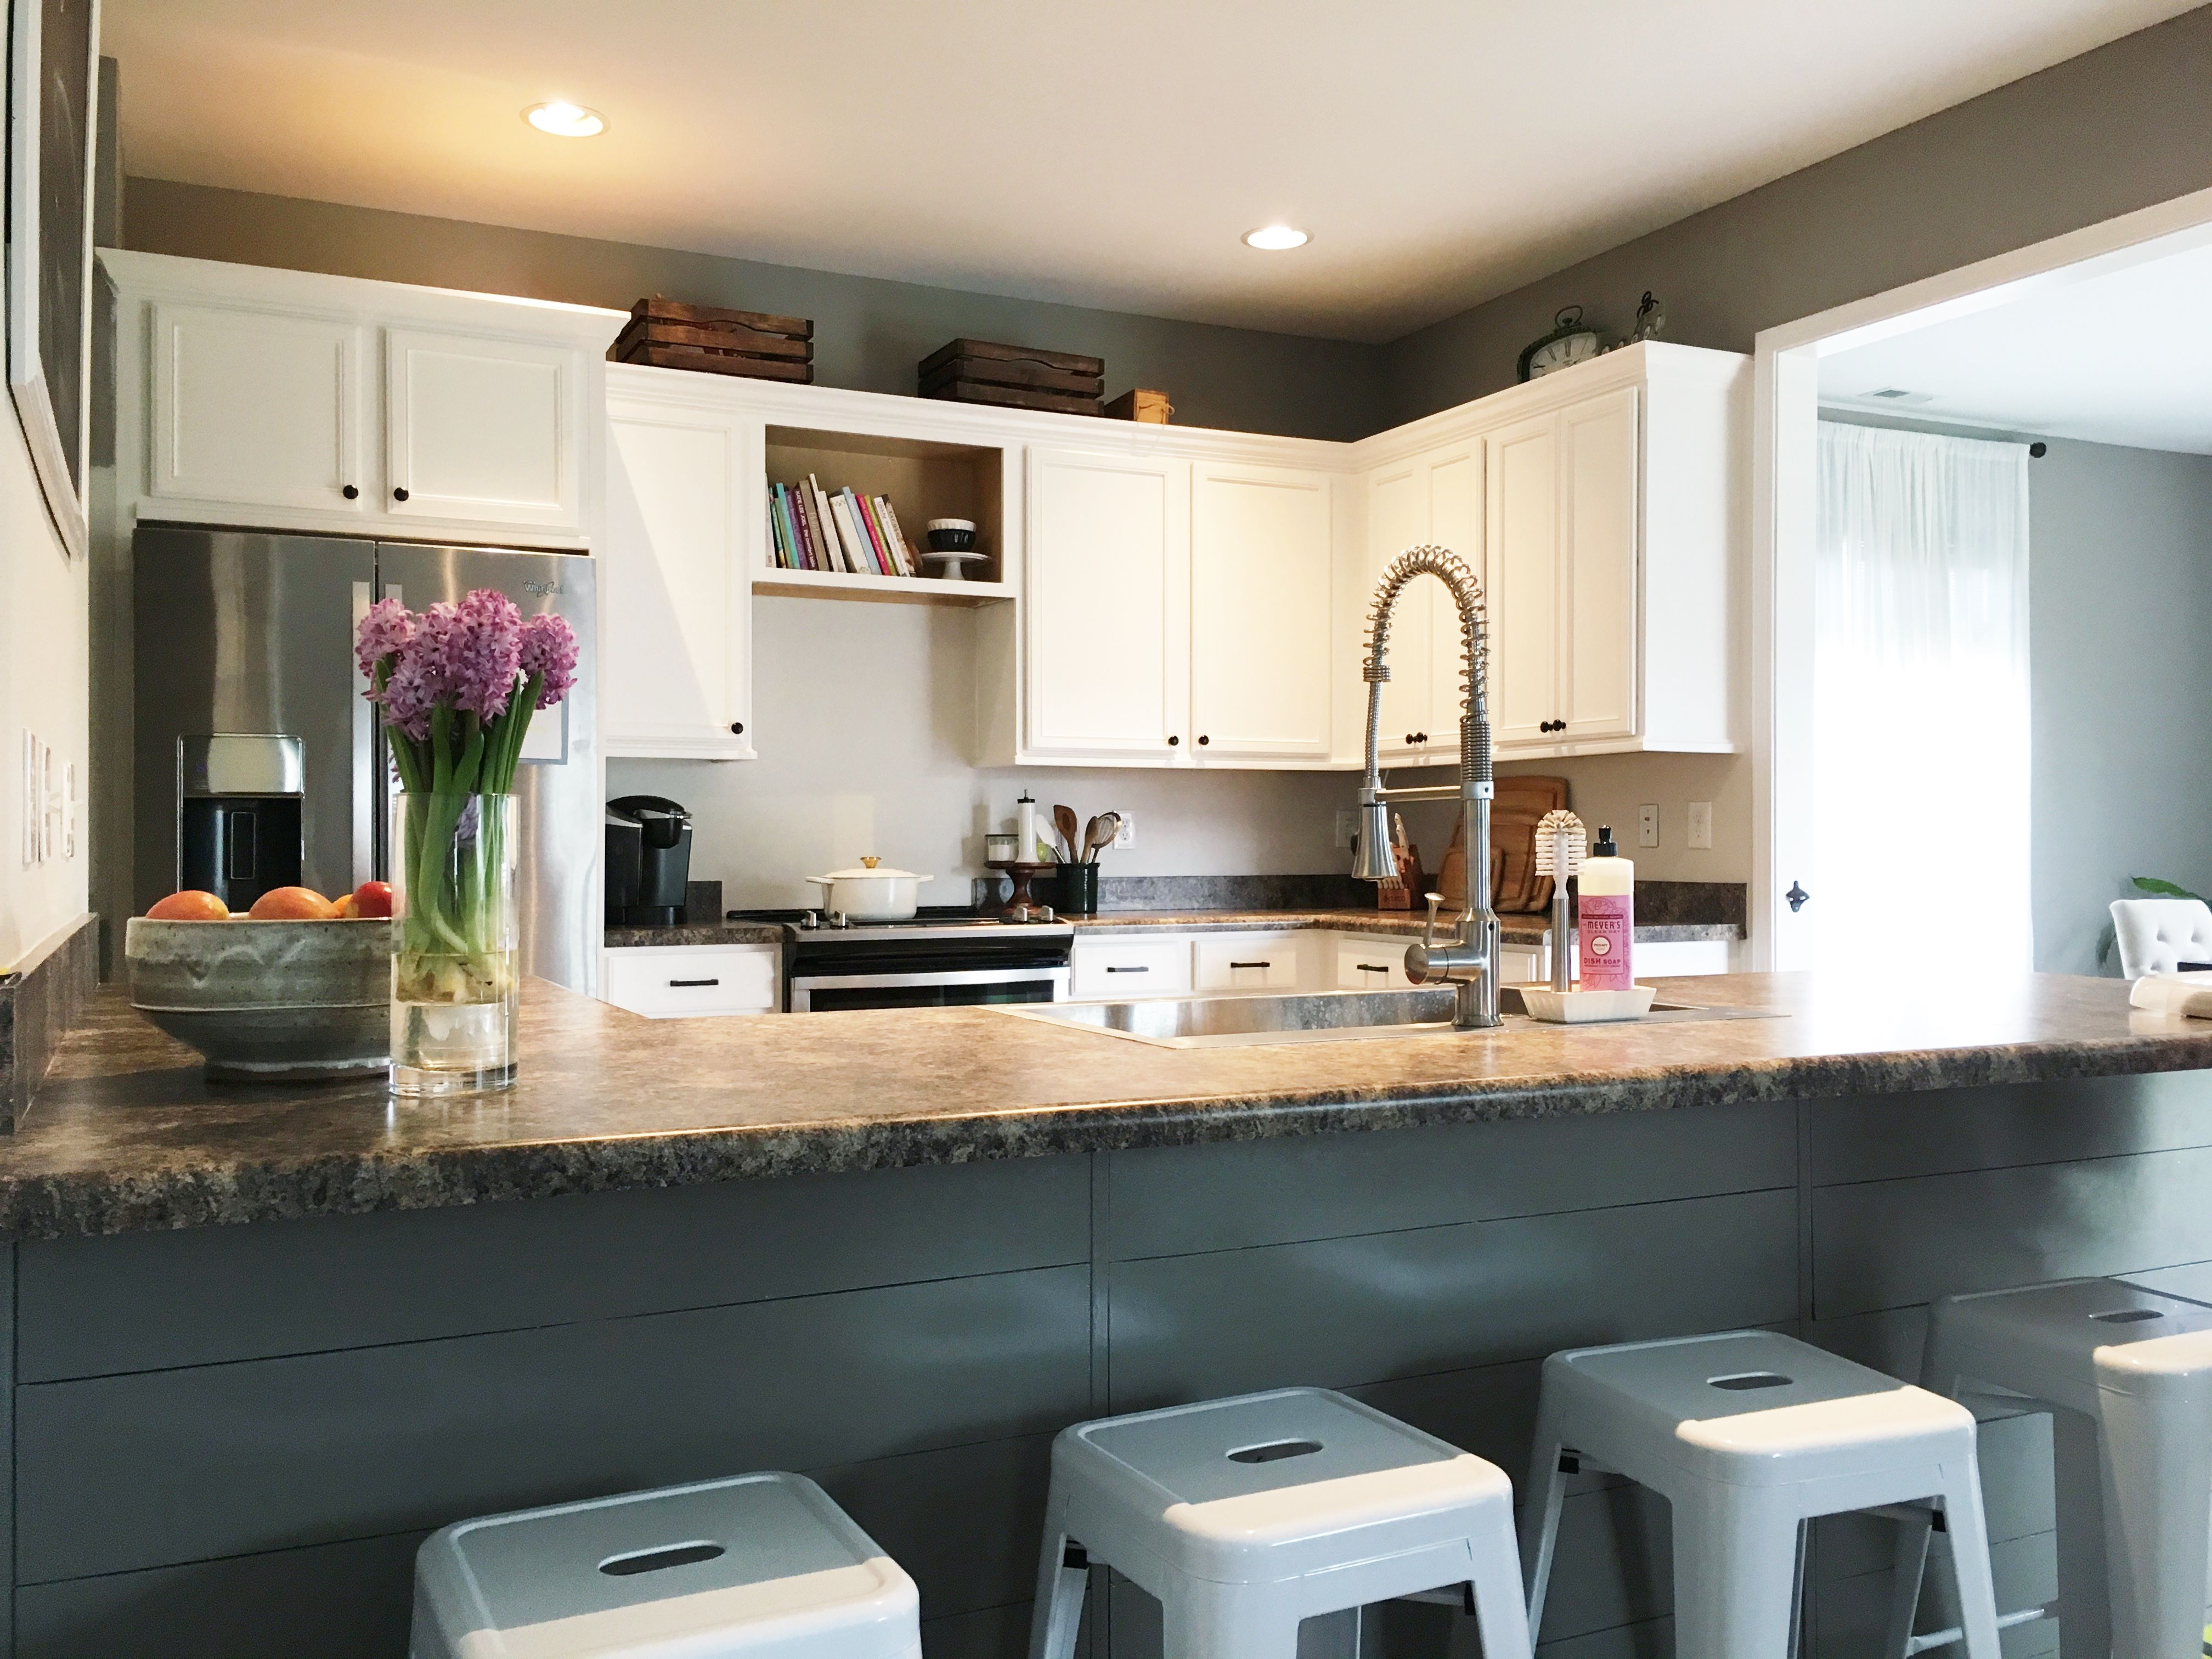 Kitchen makeover using Benjamin Moore Chantilly Lace and ...